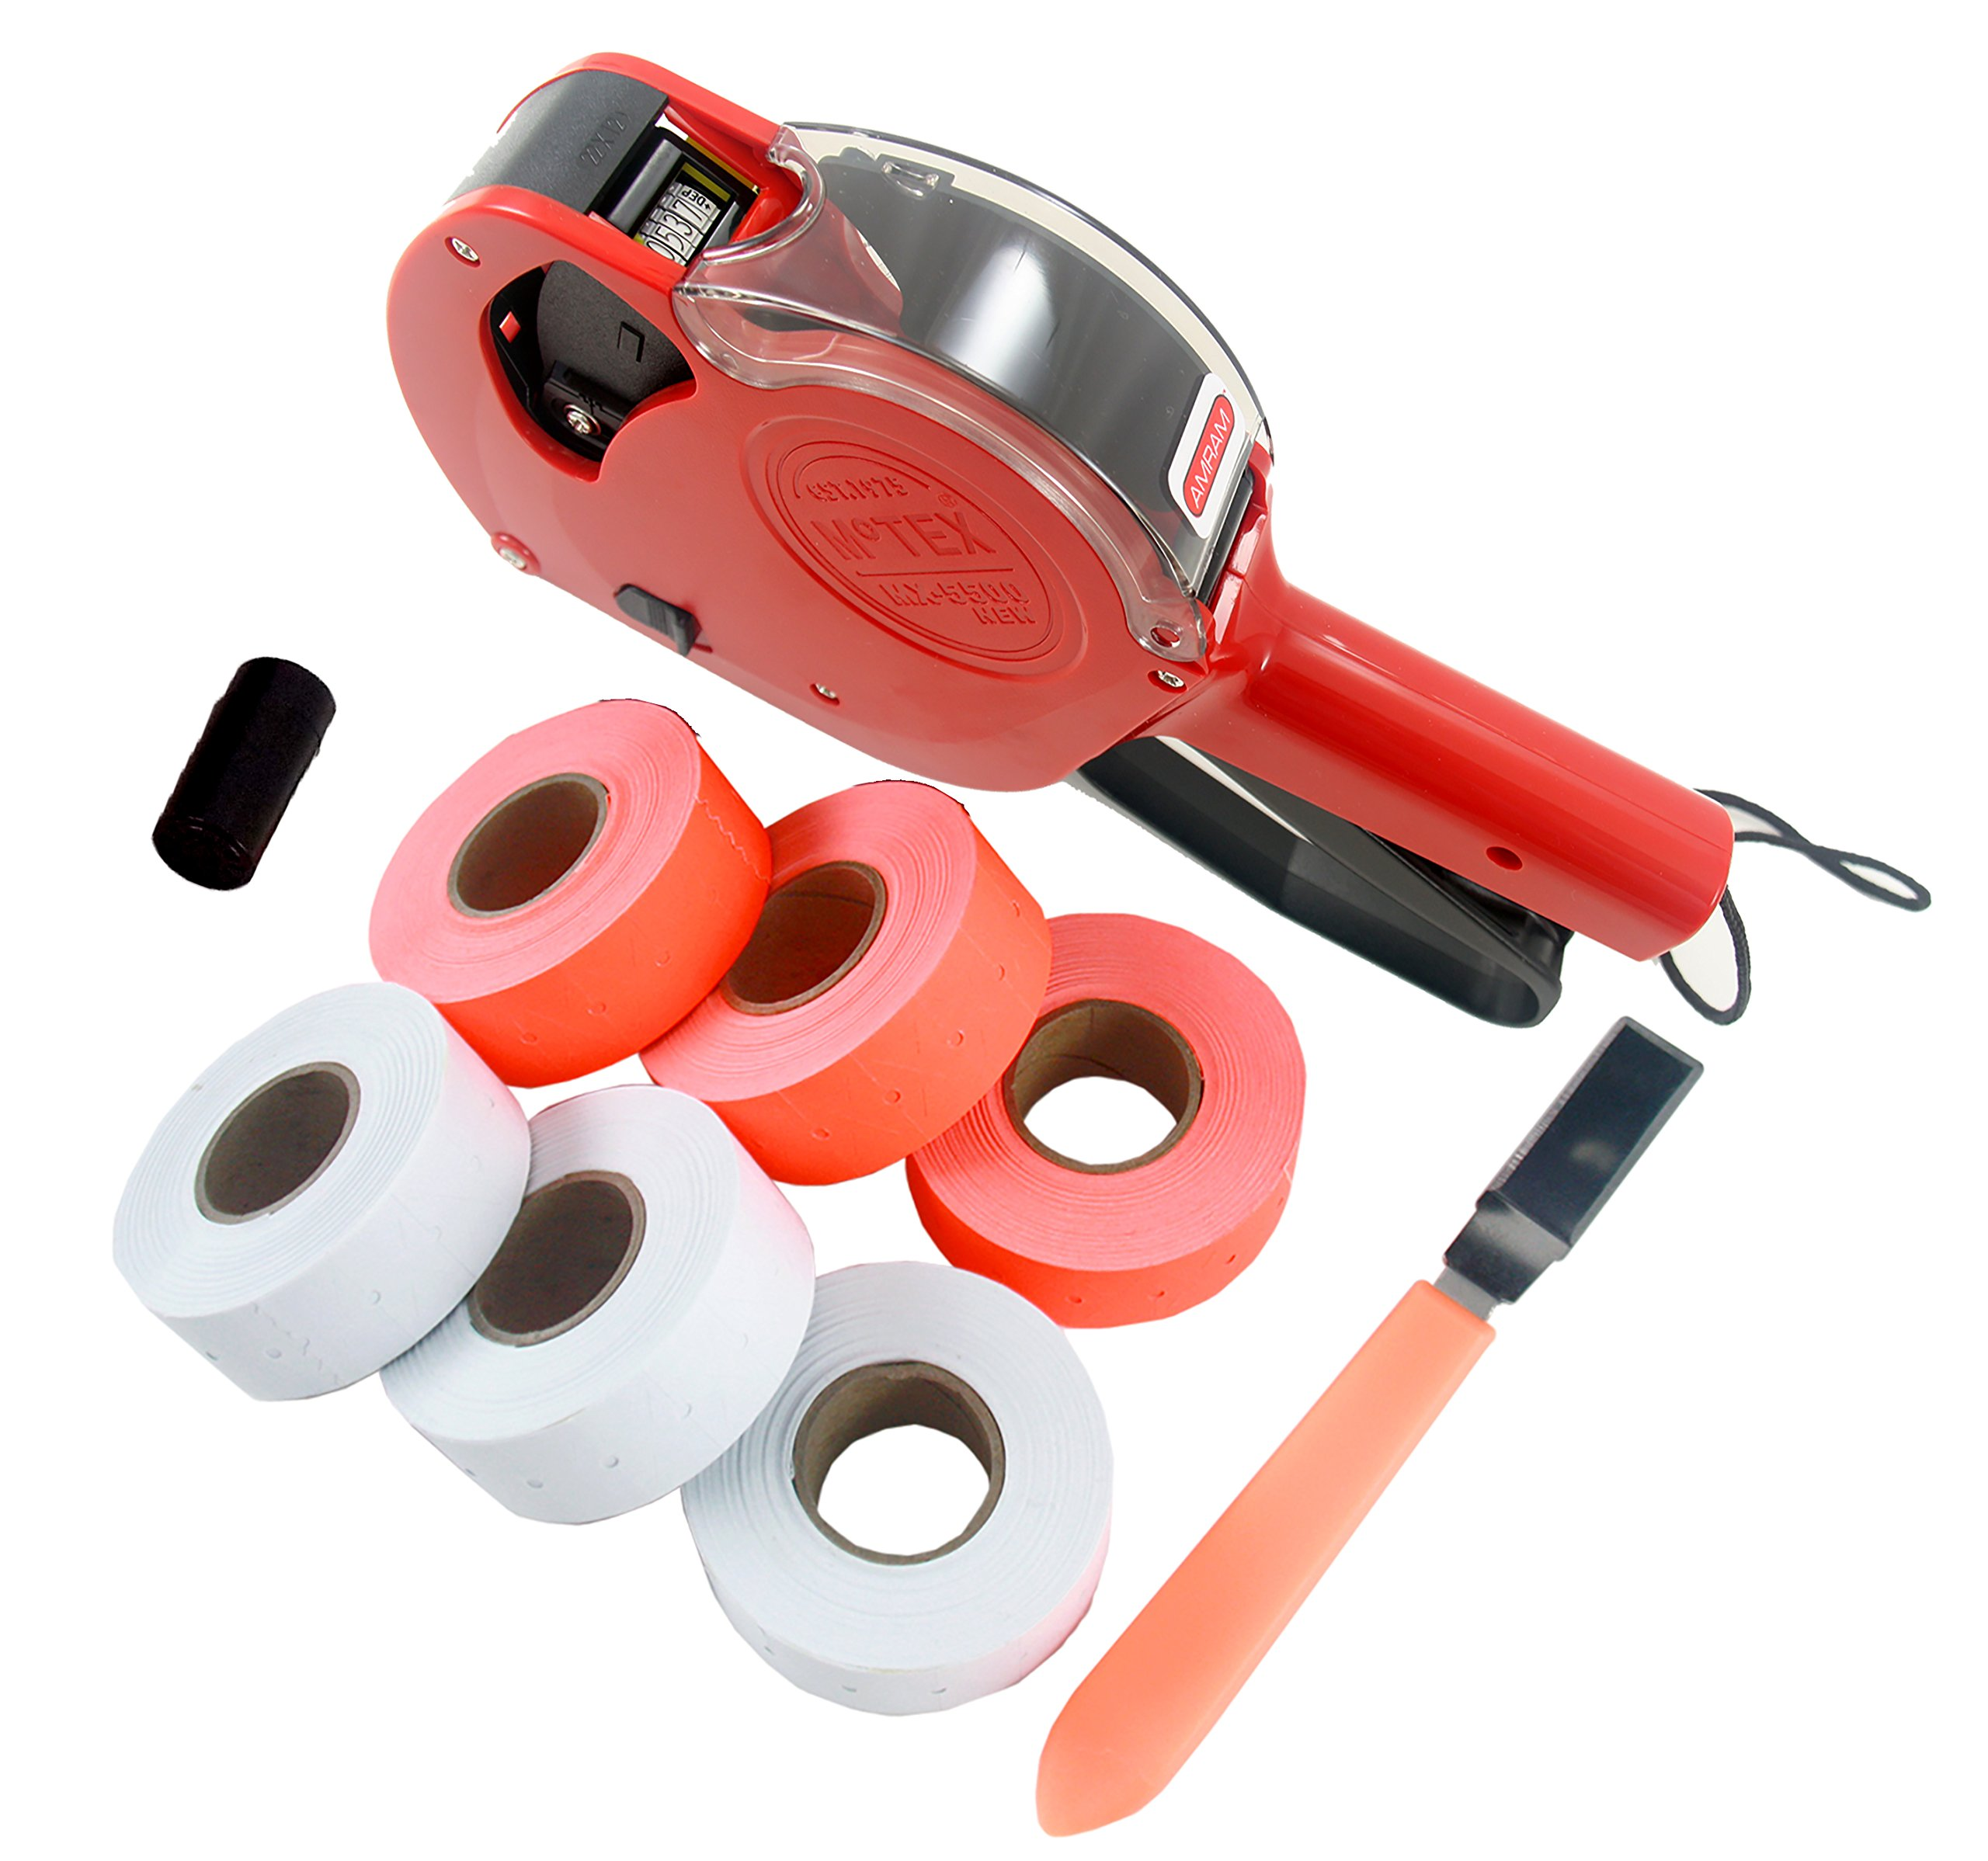 Amram 1 Line/ 6 Characters Price Marker Starter Kit, Includes 6,000 Labels, 1 Pre-Loaded Ink Roller, 1 Label Peeler Tool.